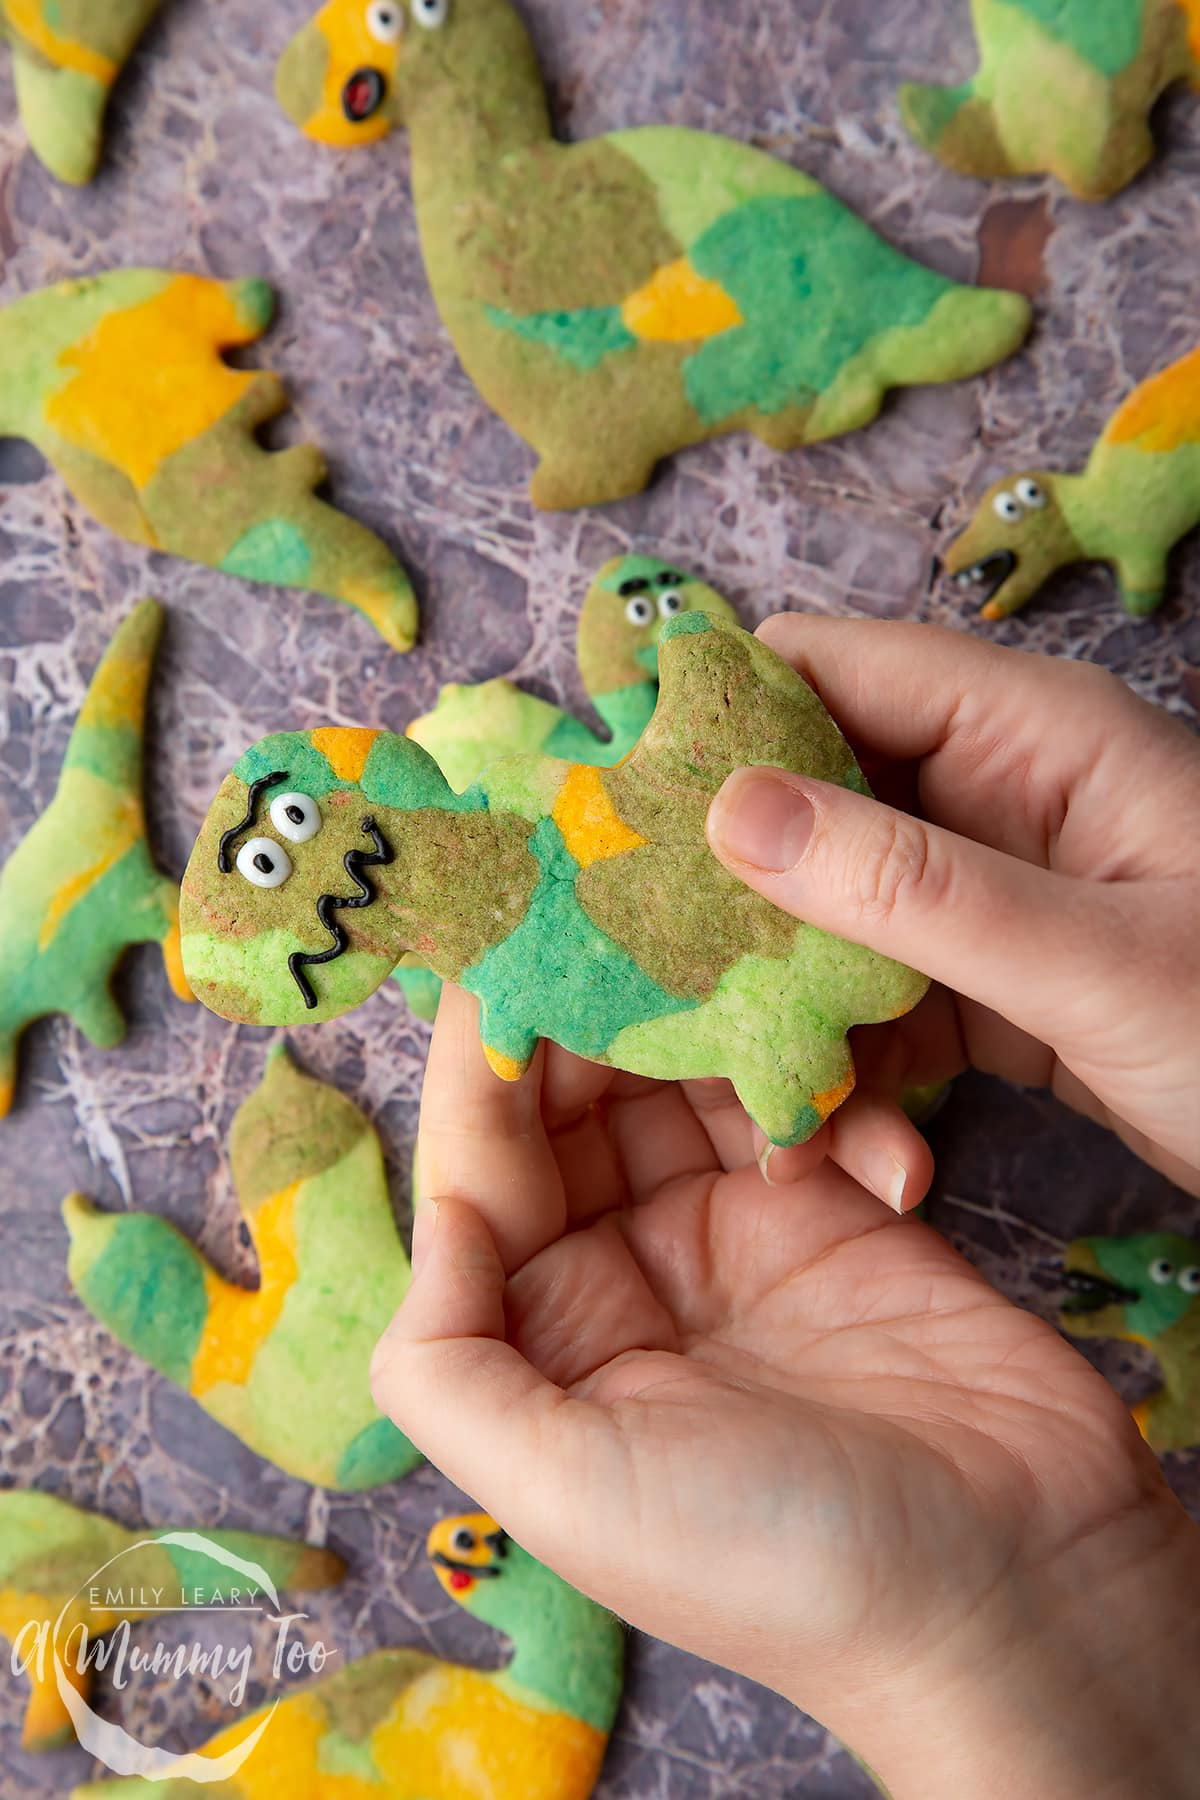 Overhead shot of a hand holding a green dinosaur cookie with the A Mummy Too logo in the corner